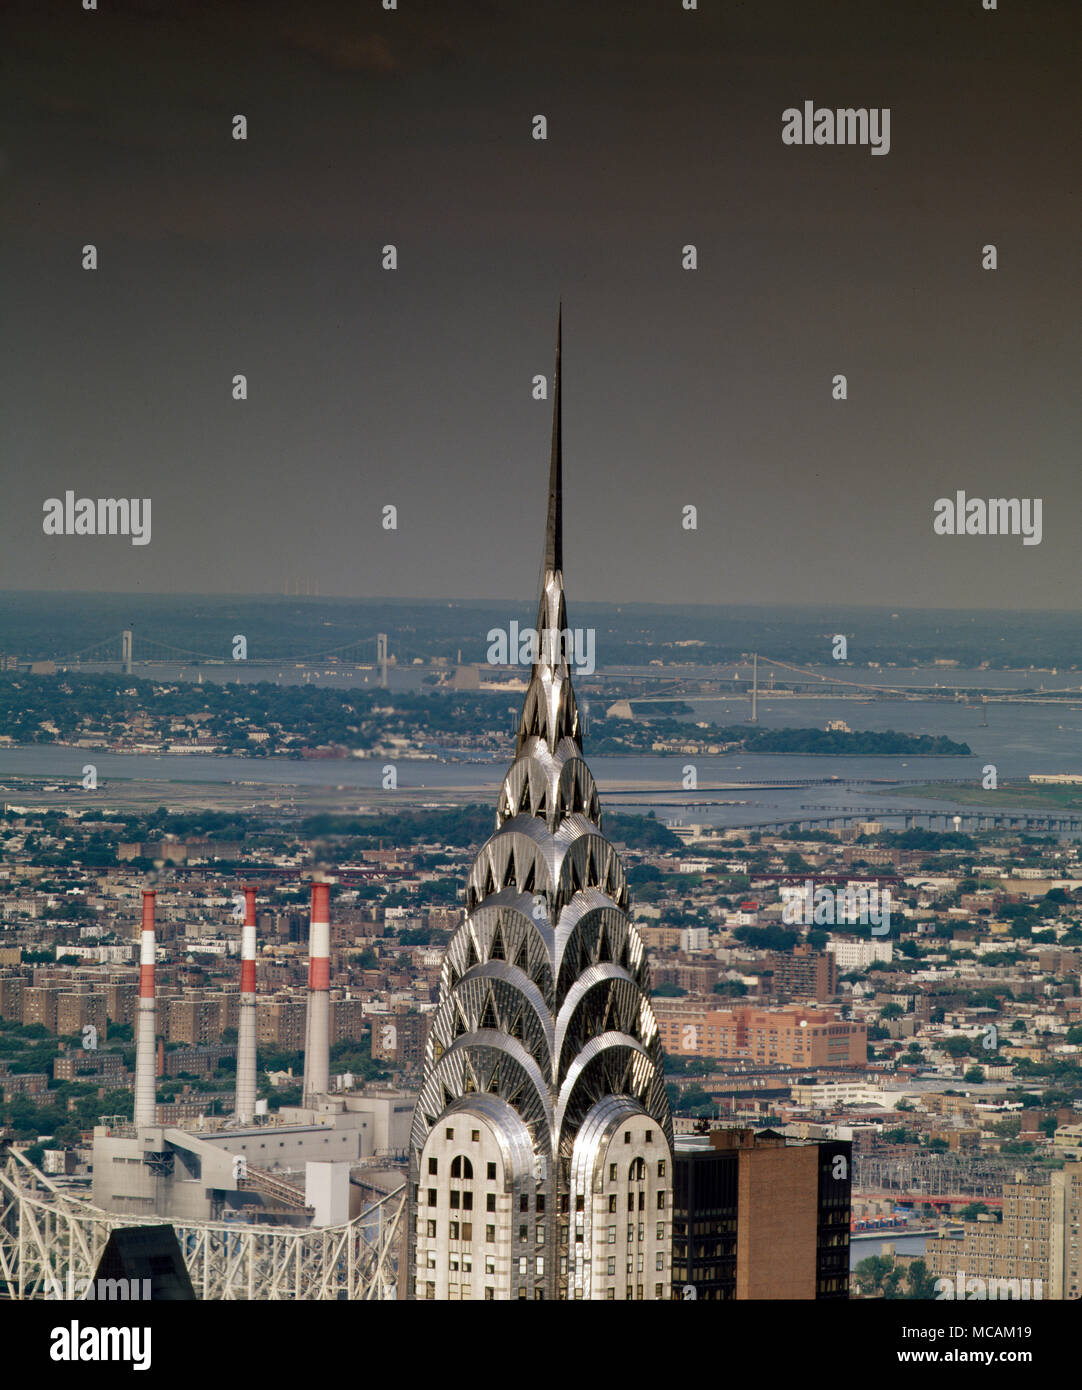 the chrysler building is an art deco style skyscraper in new york